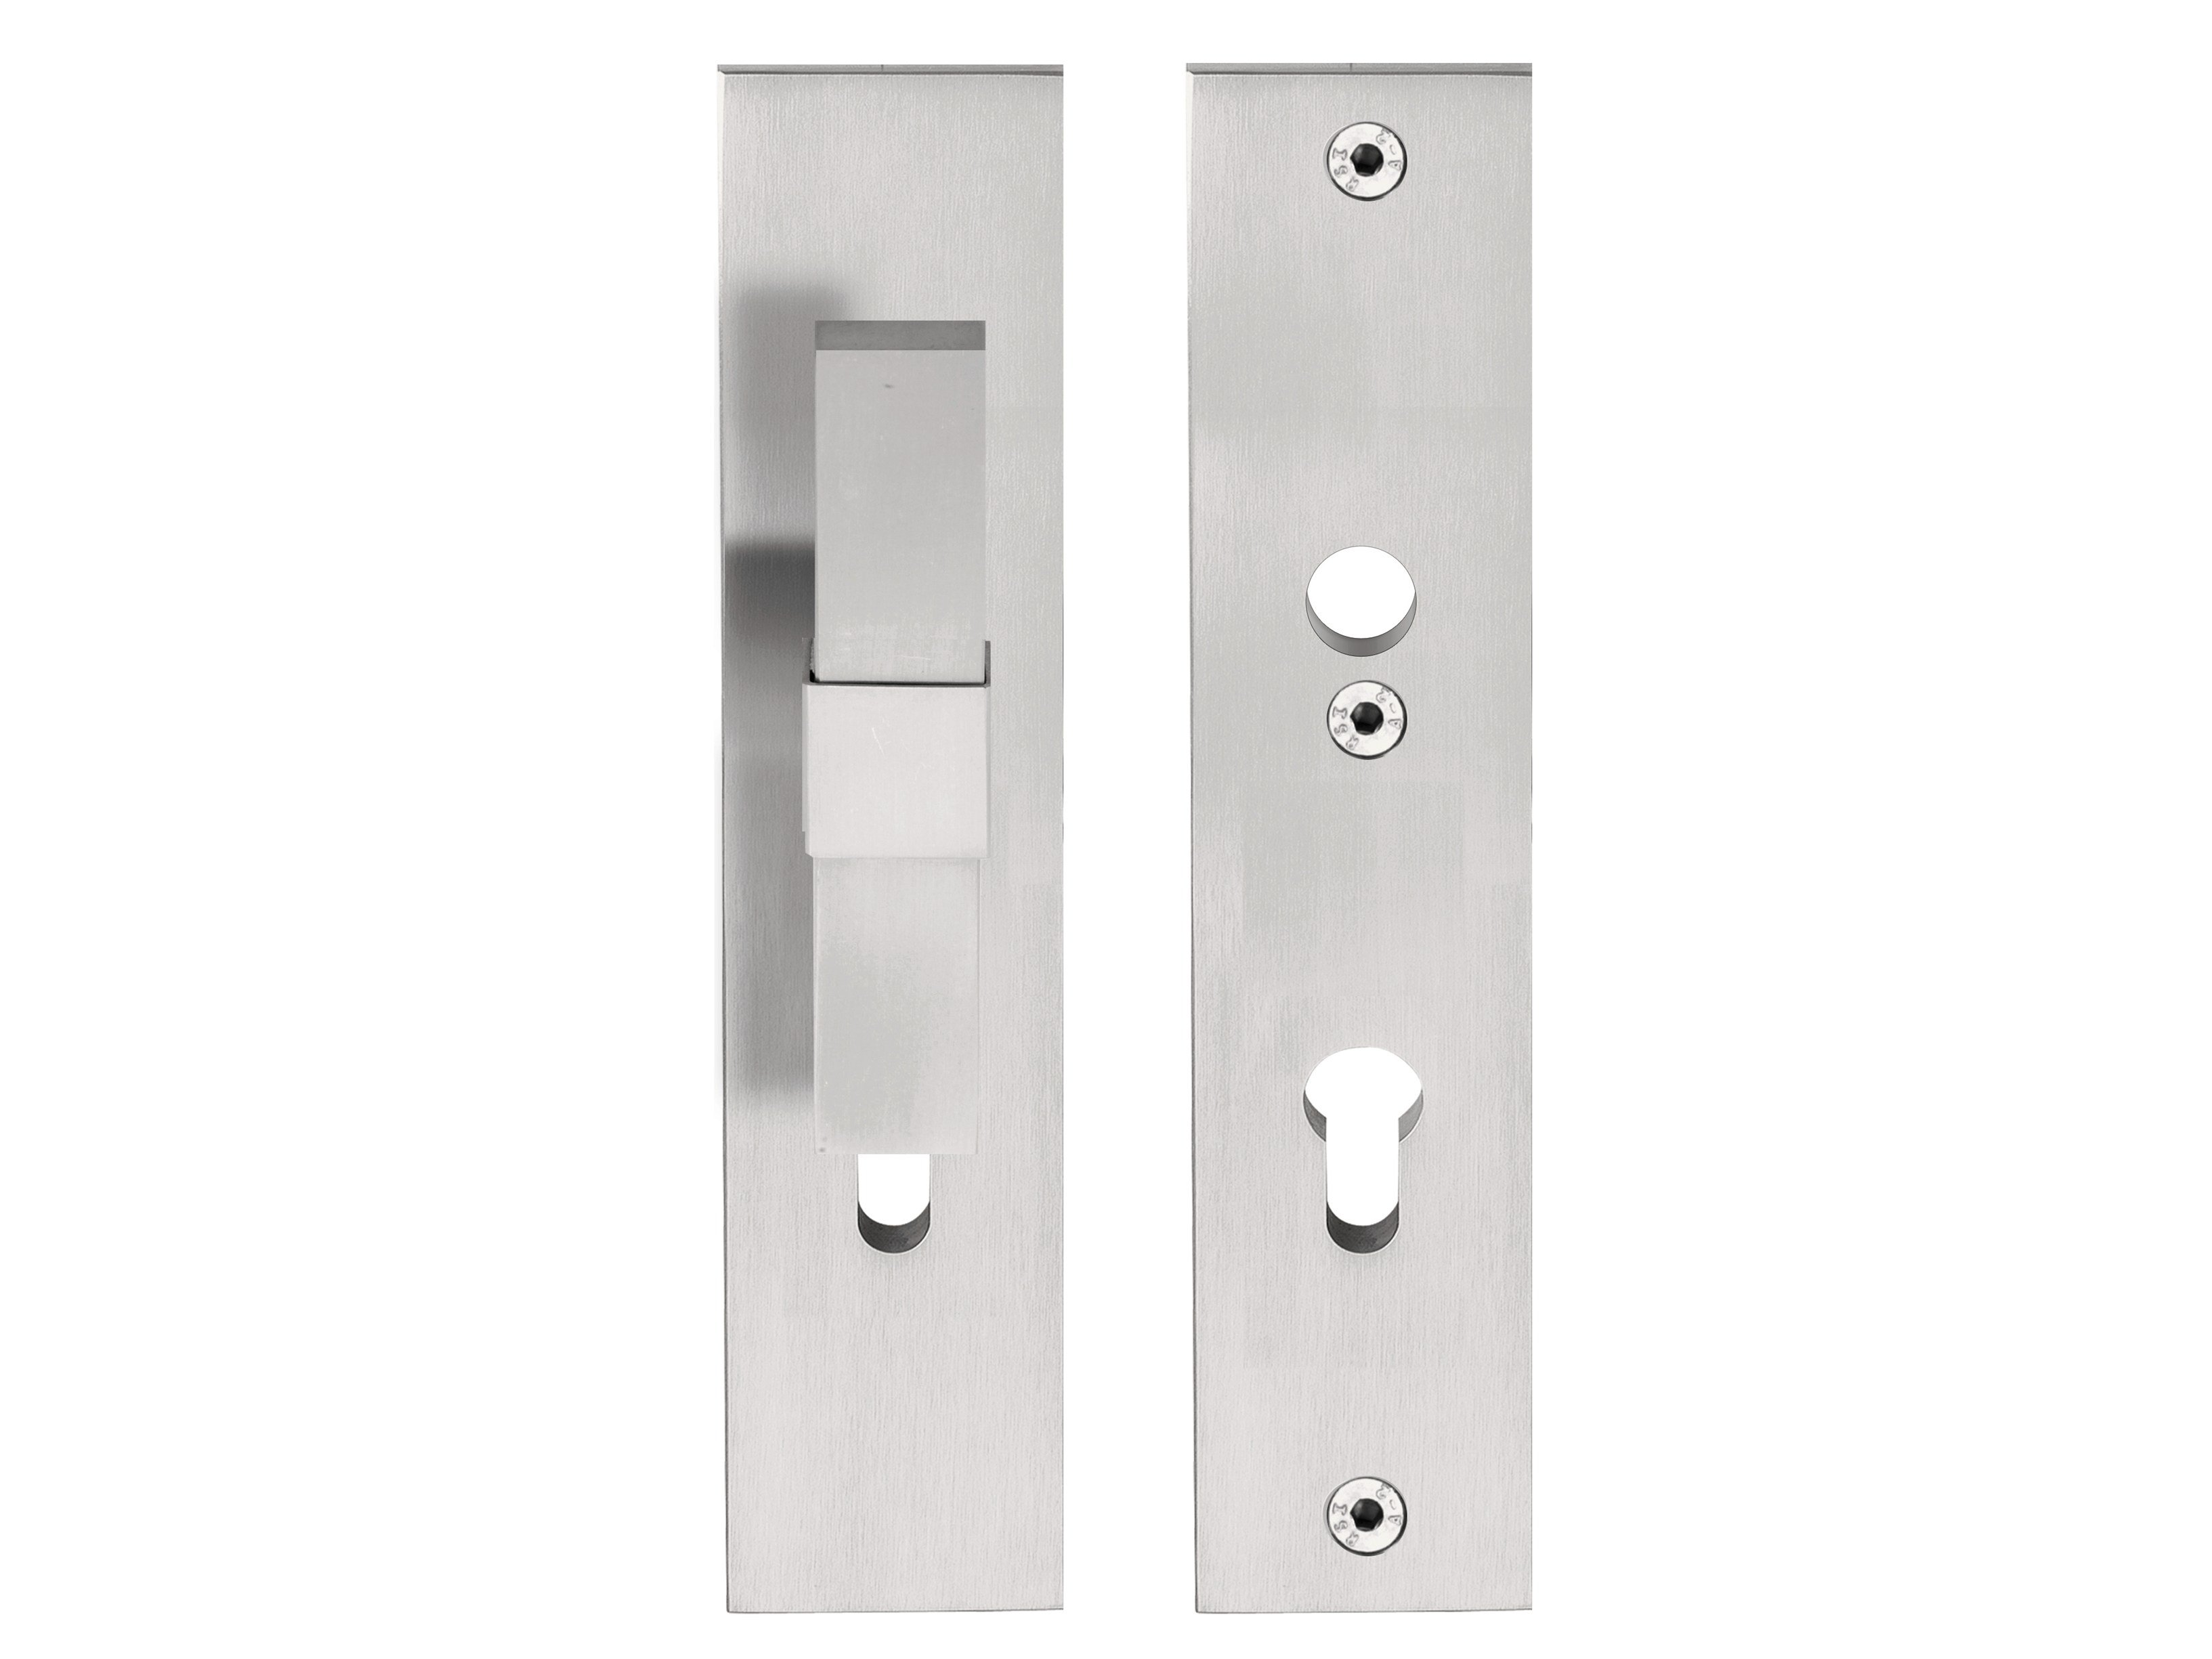 2450 #6A6161 Stainless Steel Exterior Door Handle On Back Plate VOLUME Exterior  picture/photo Stainless Steel Front Doors 47393266